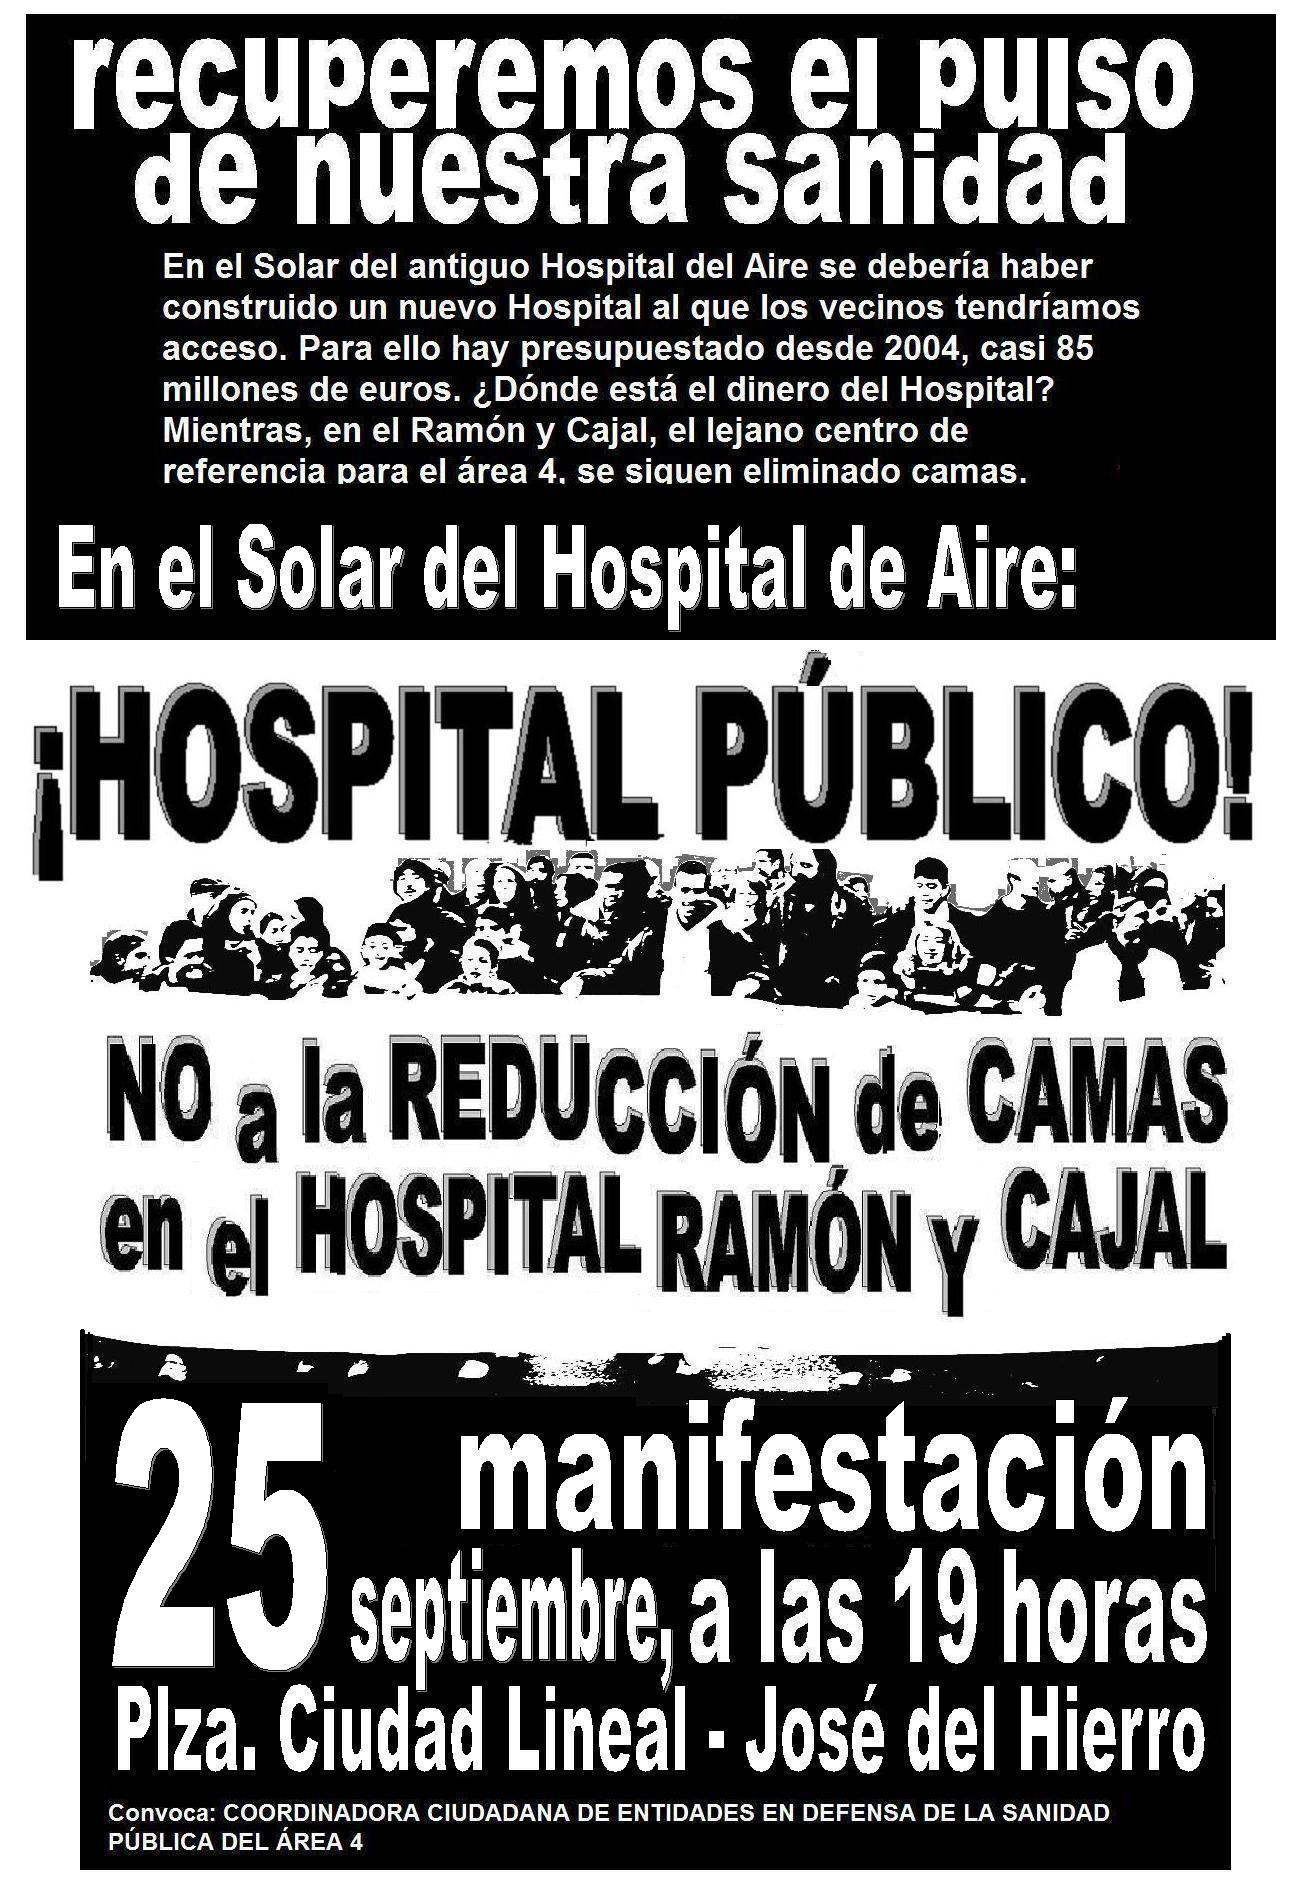 Manifestacin del 25 de septiembre: En este solar (hospital de Aire) queremos un hospital pblico!